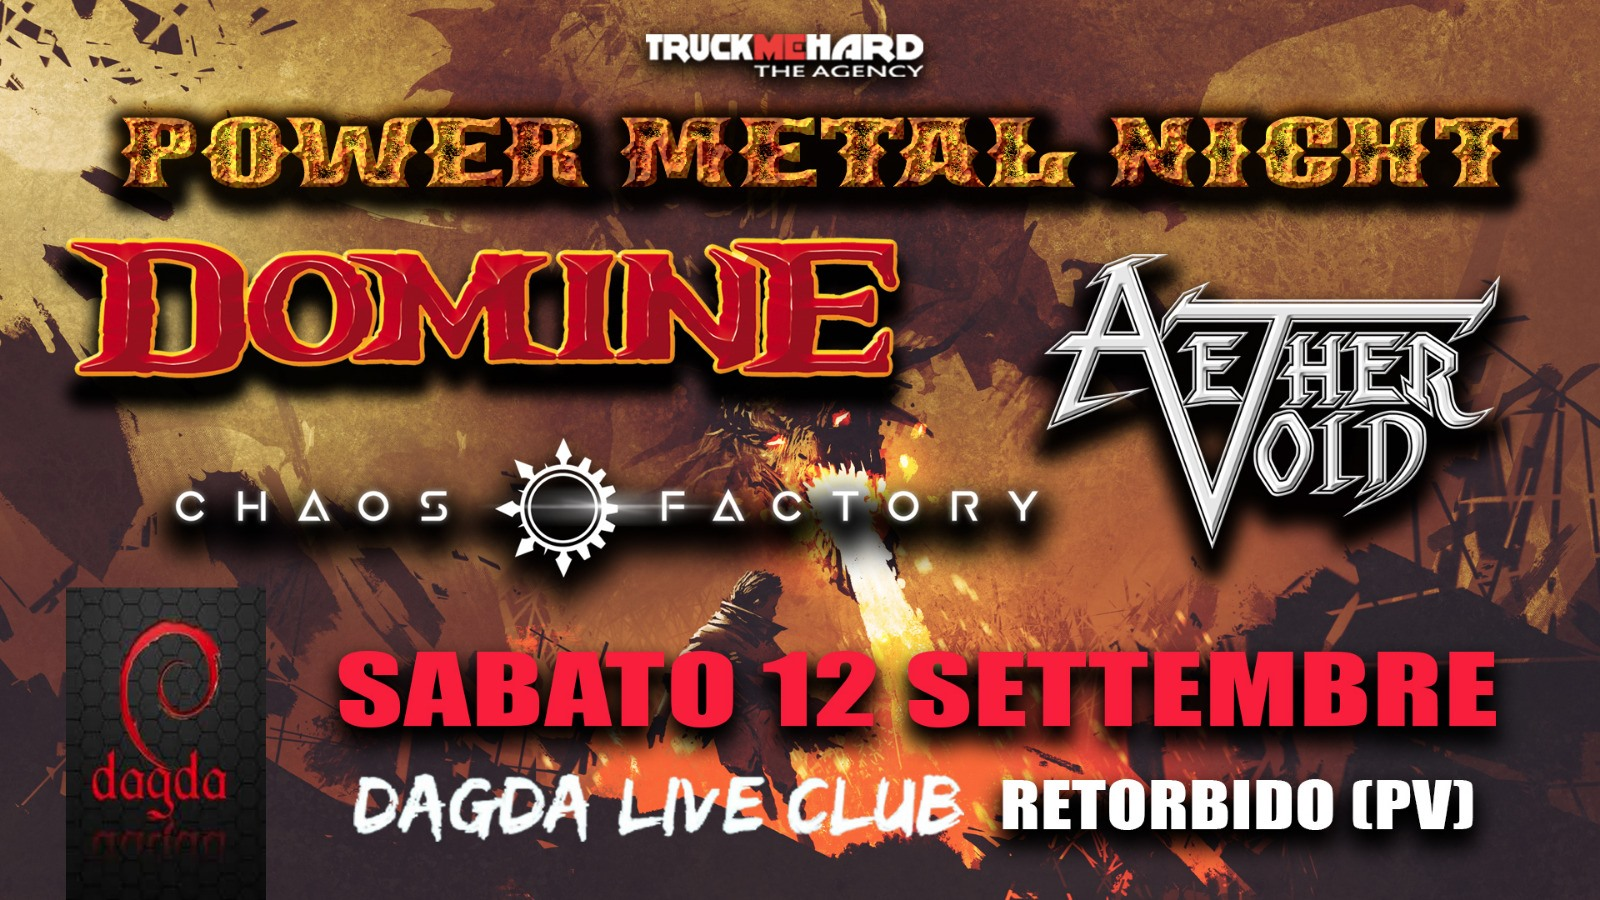 POWER METAL NIGHT: annullato l'evento al Dagda Live Club